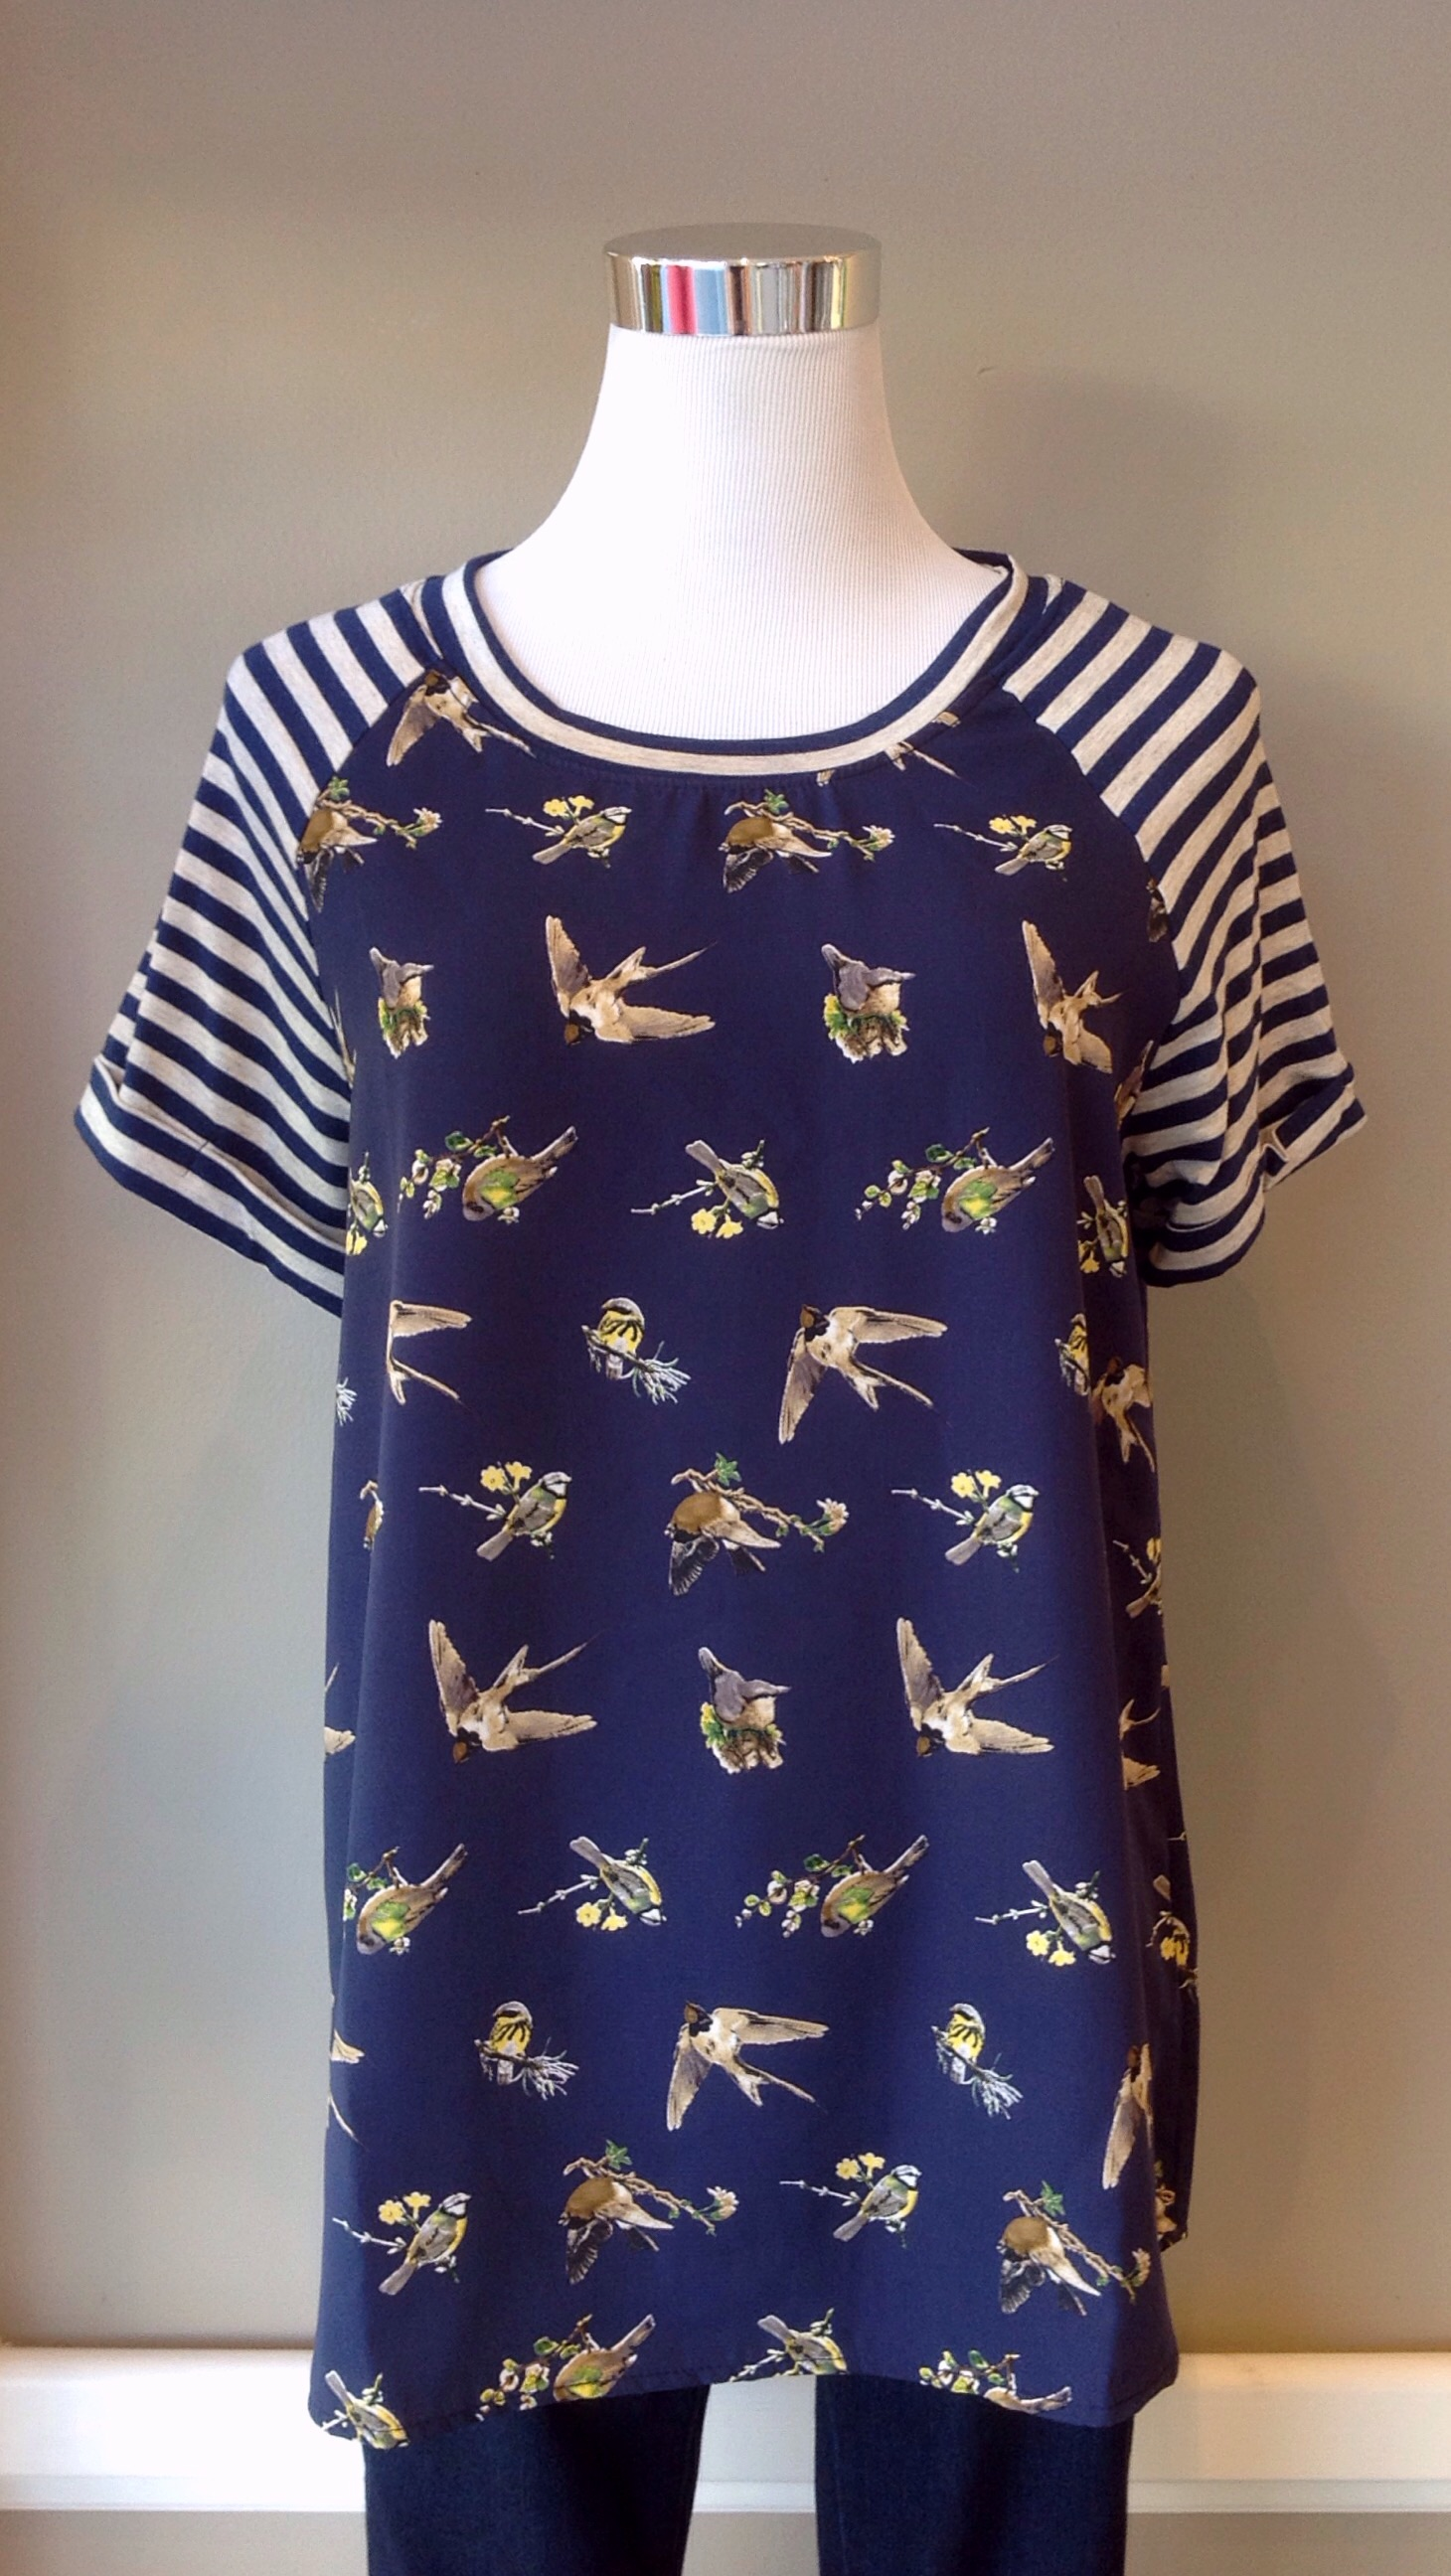 Woven bird print tee with contrasting knit sleeve, $32